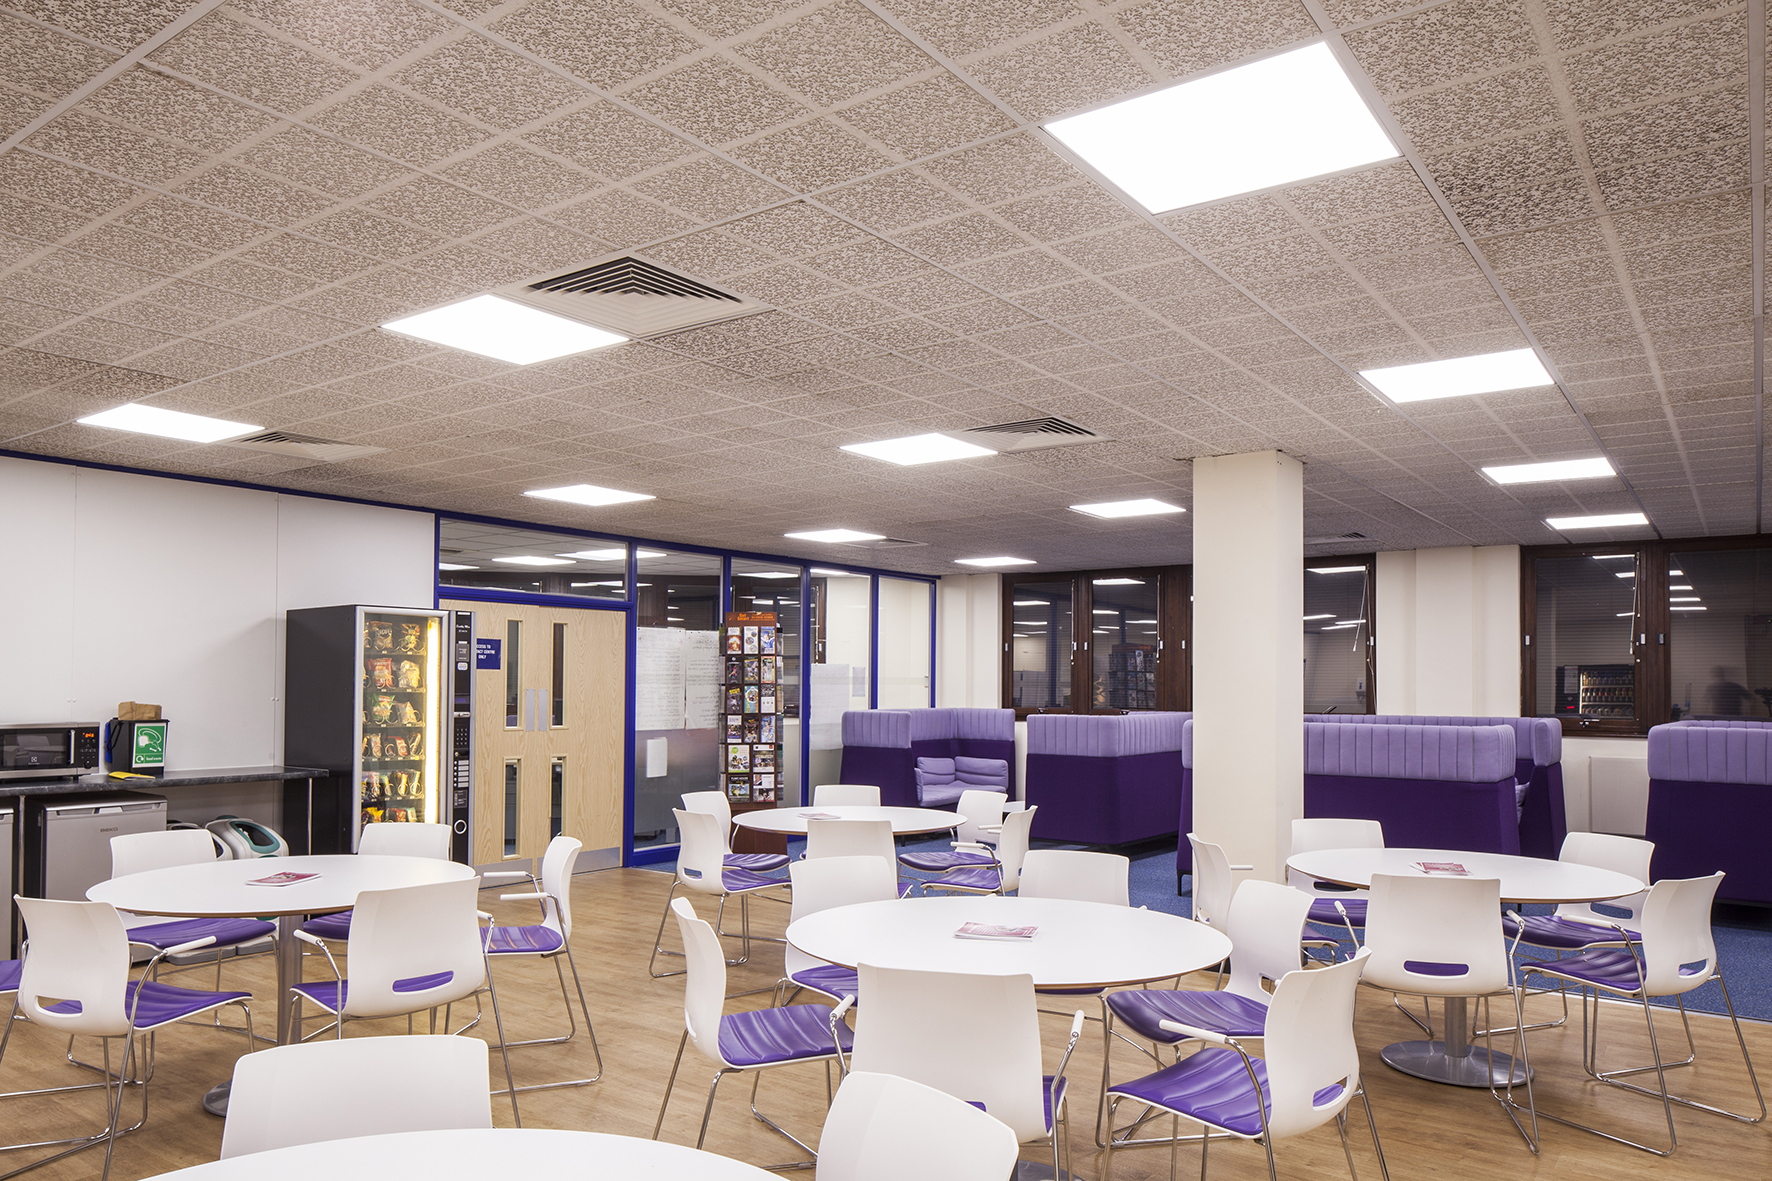 Replace Light Switch >> St Albans City and District Council invest in Goodlight LED panels to transform office lighting ...